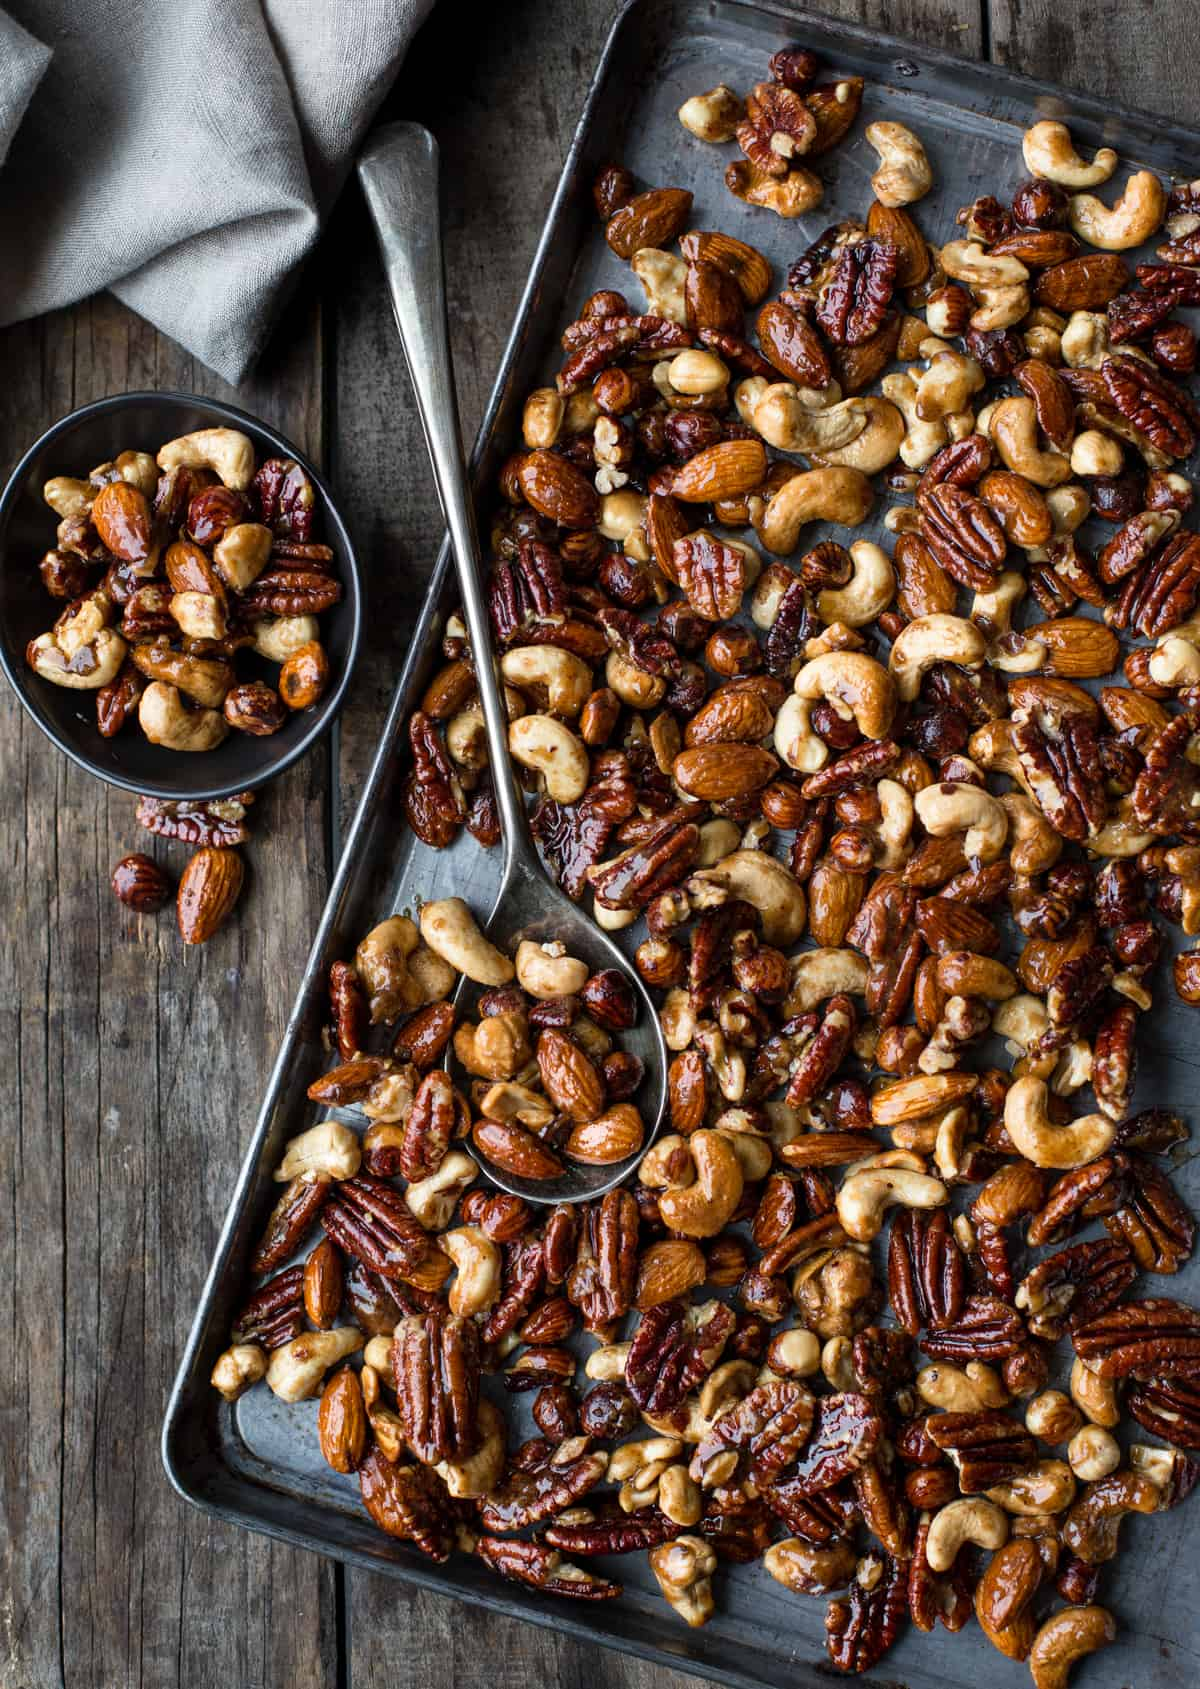 A sheet tray full of smoked candied nuts